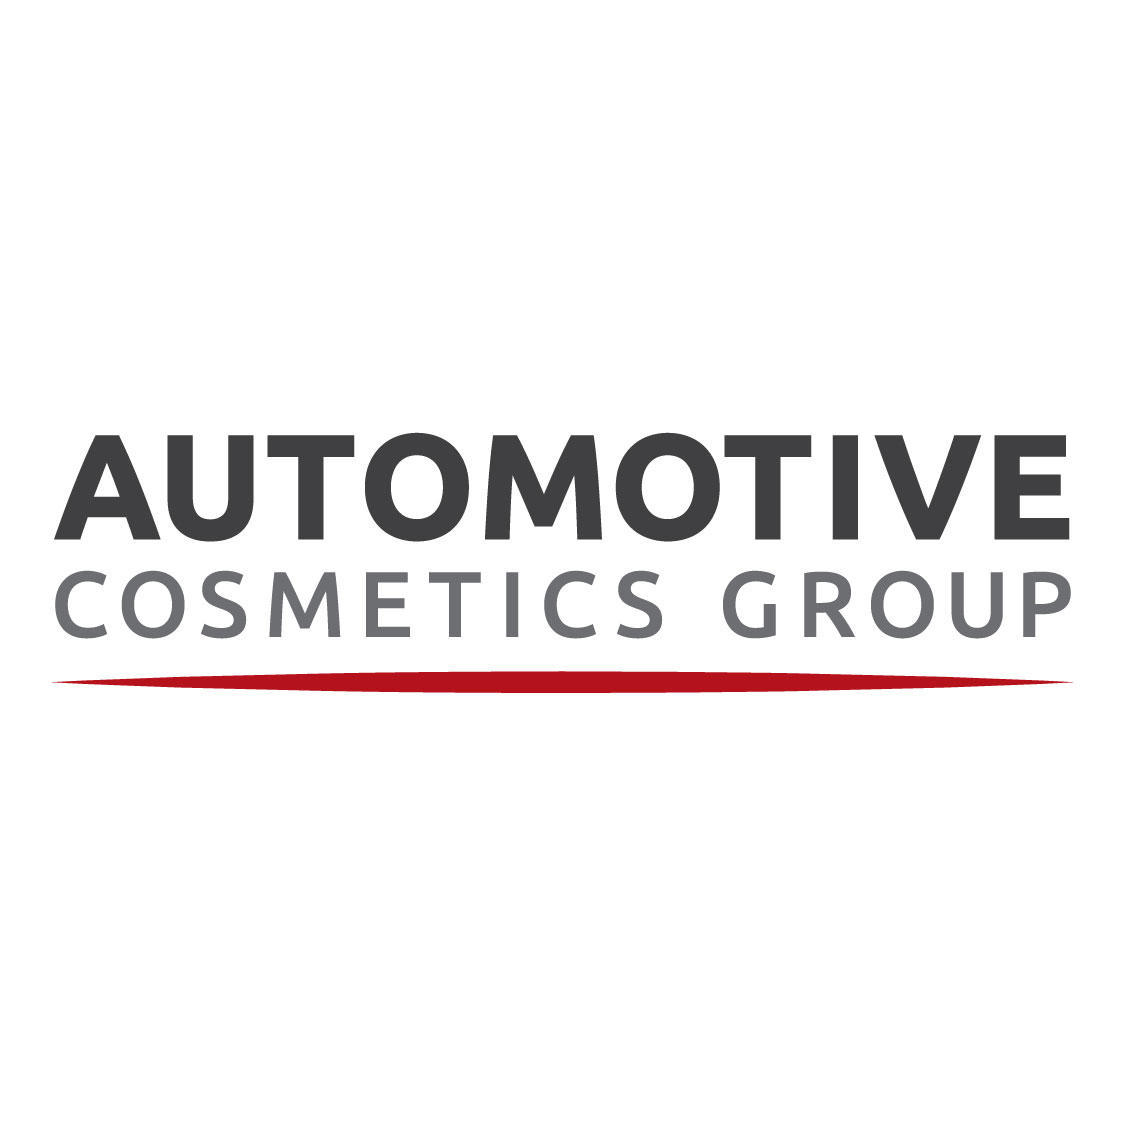 Automotive Cosmetics Group